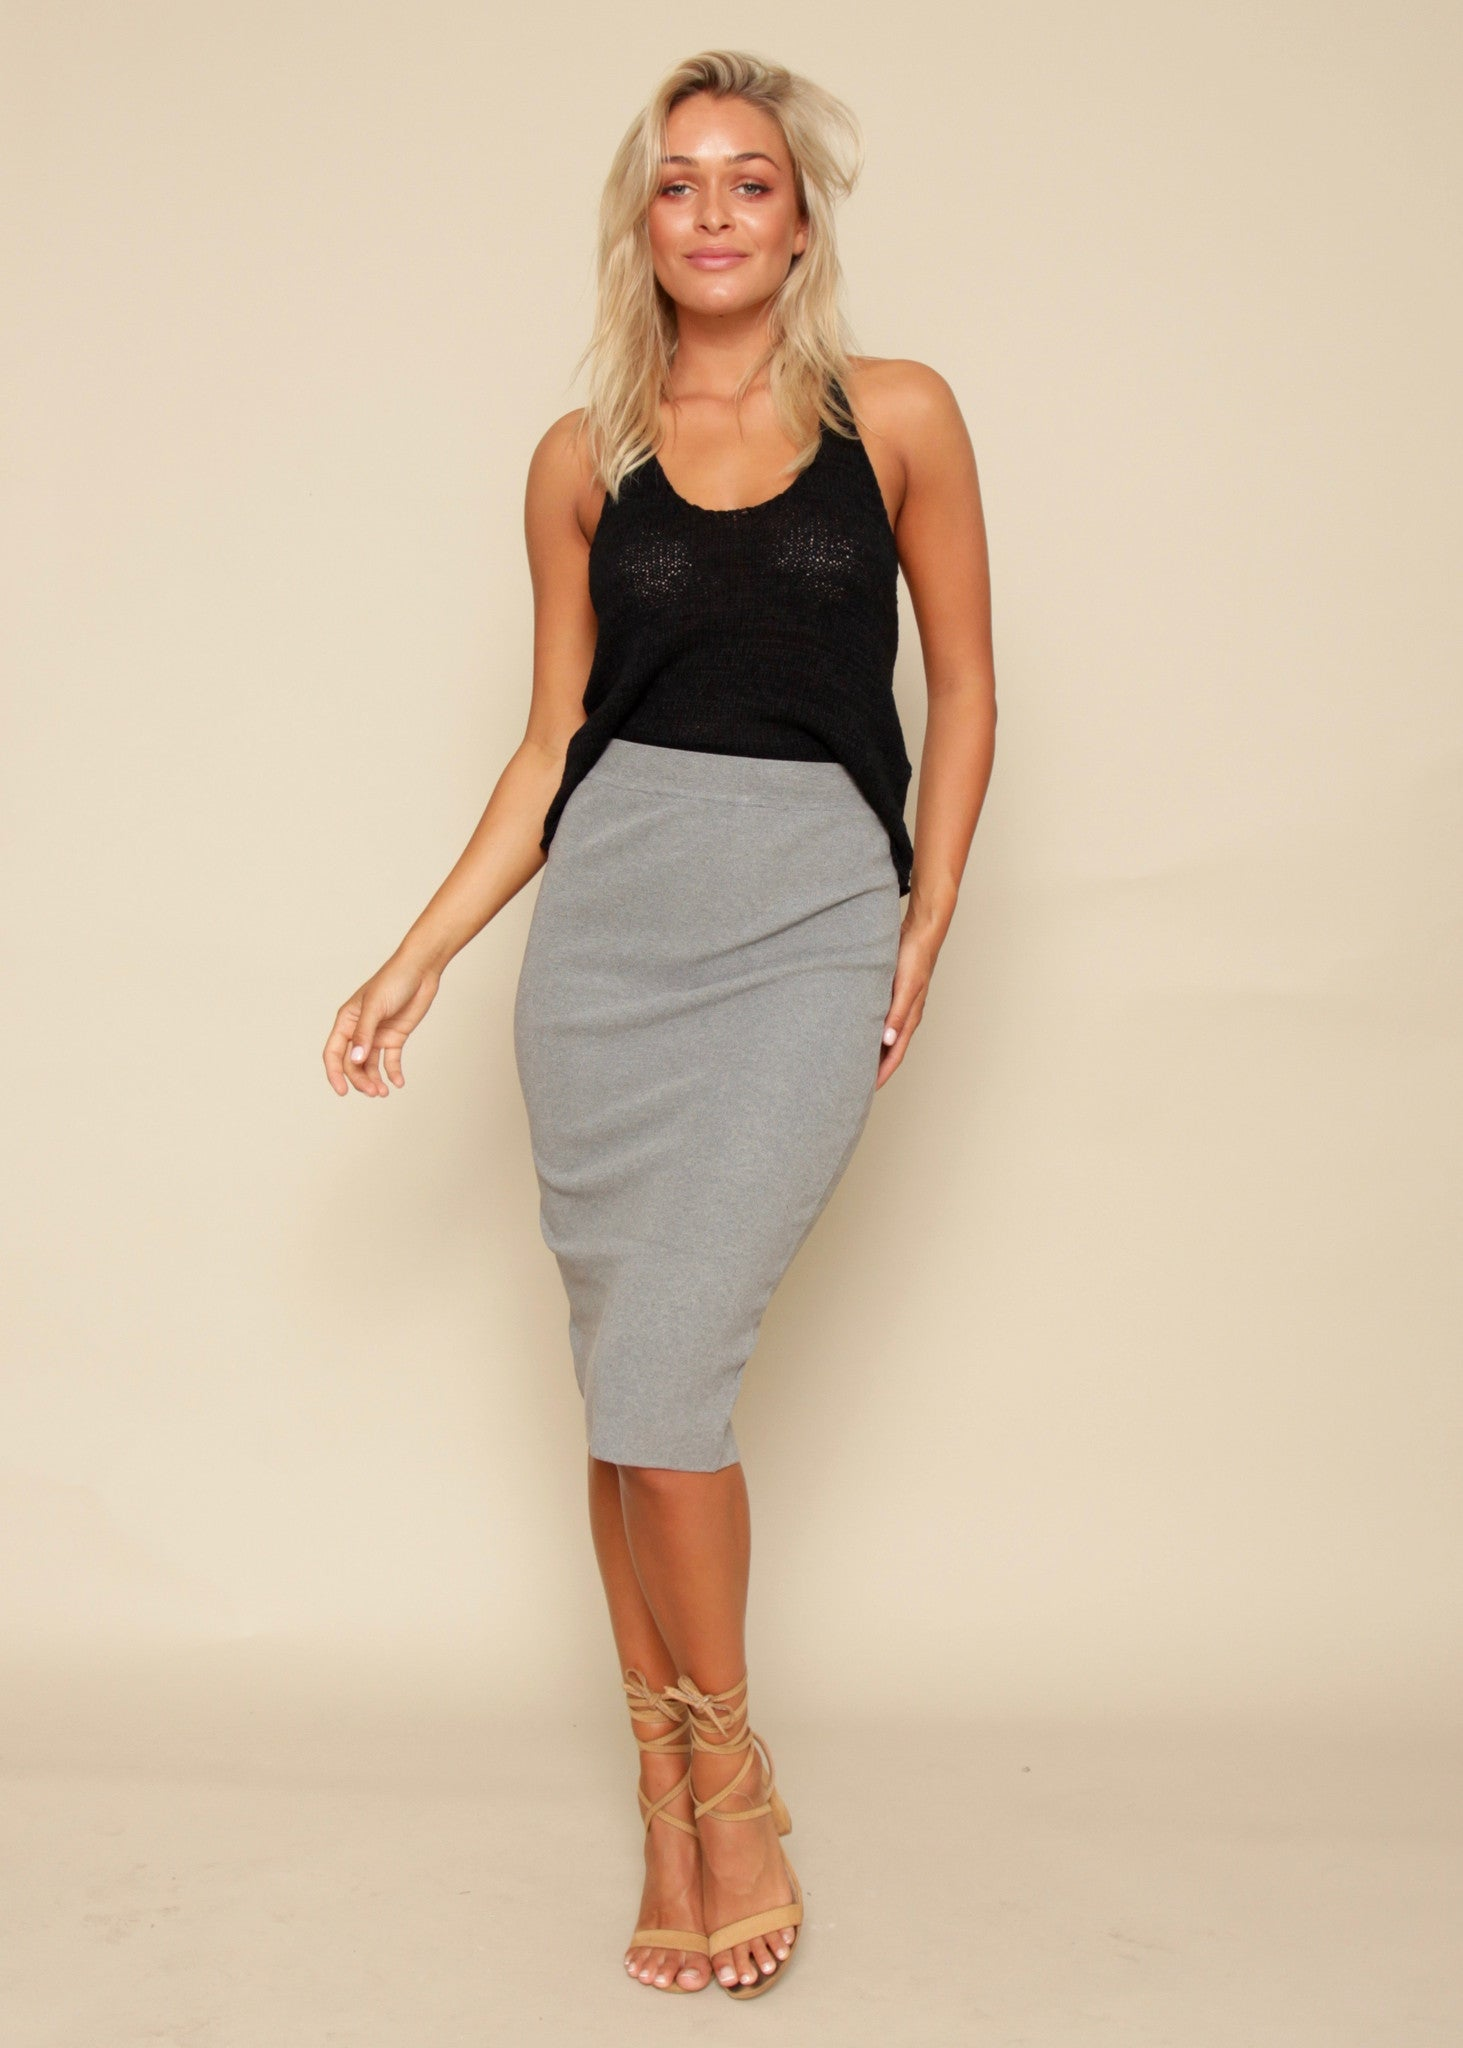 Mile High Skirt - Grey